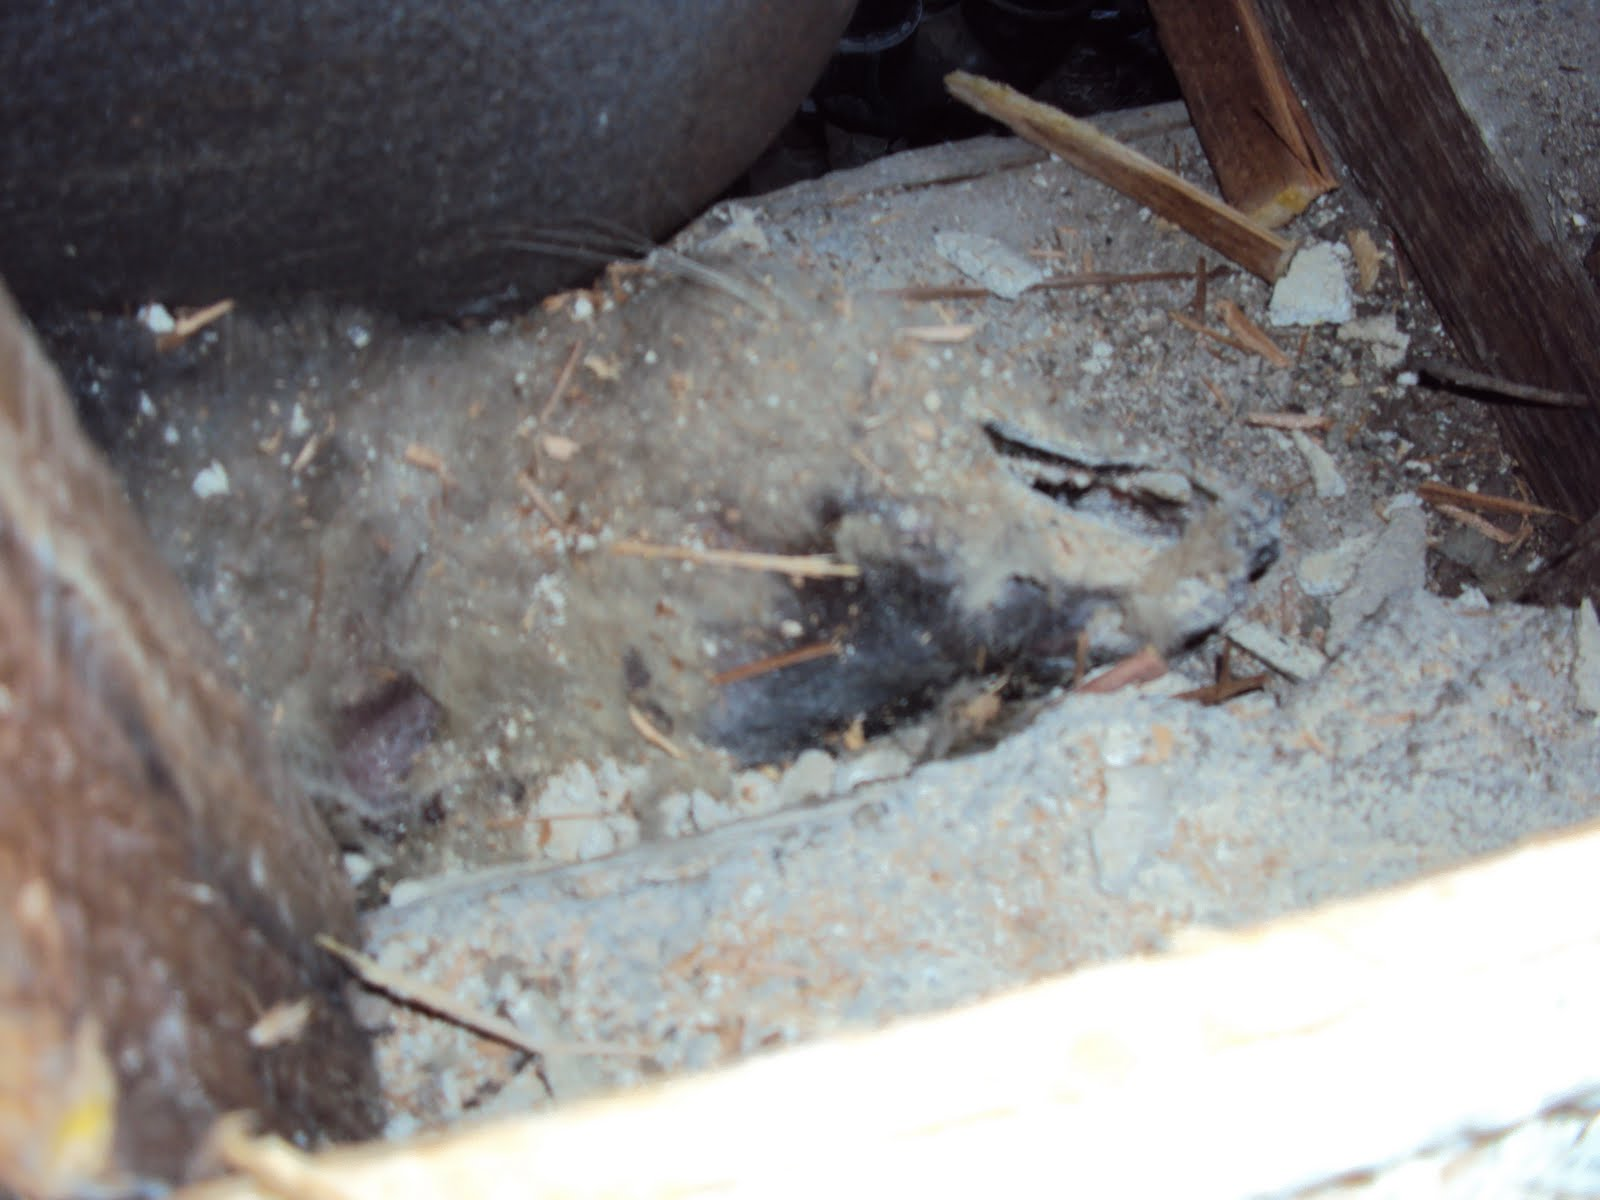 All City Animal Trapping: Bad Smell In Your Attic or Crawl Space ...